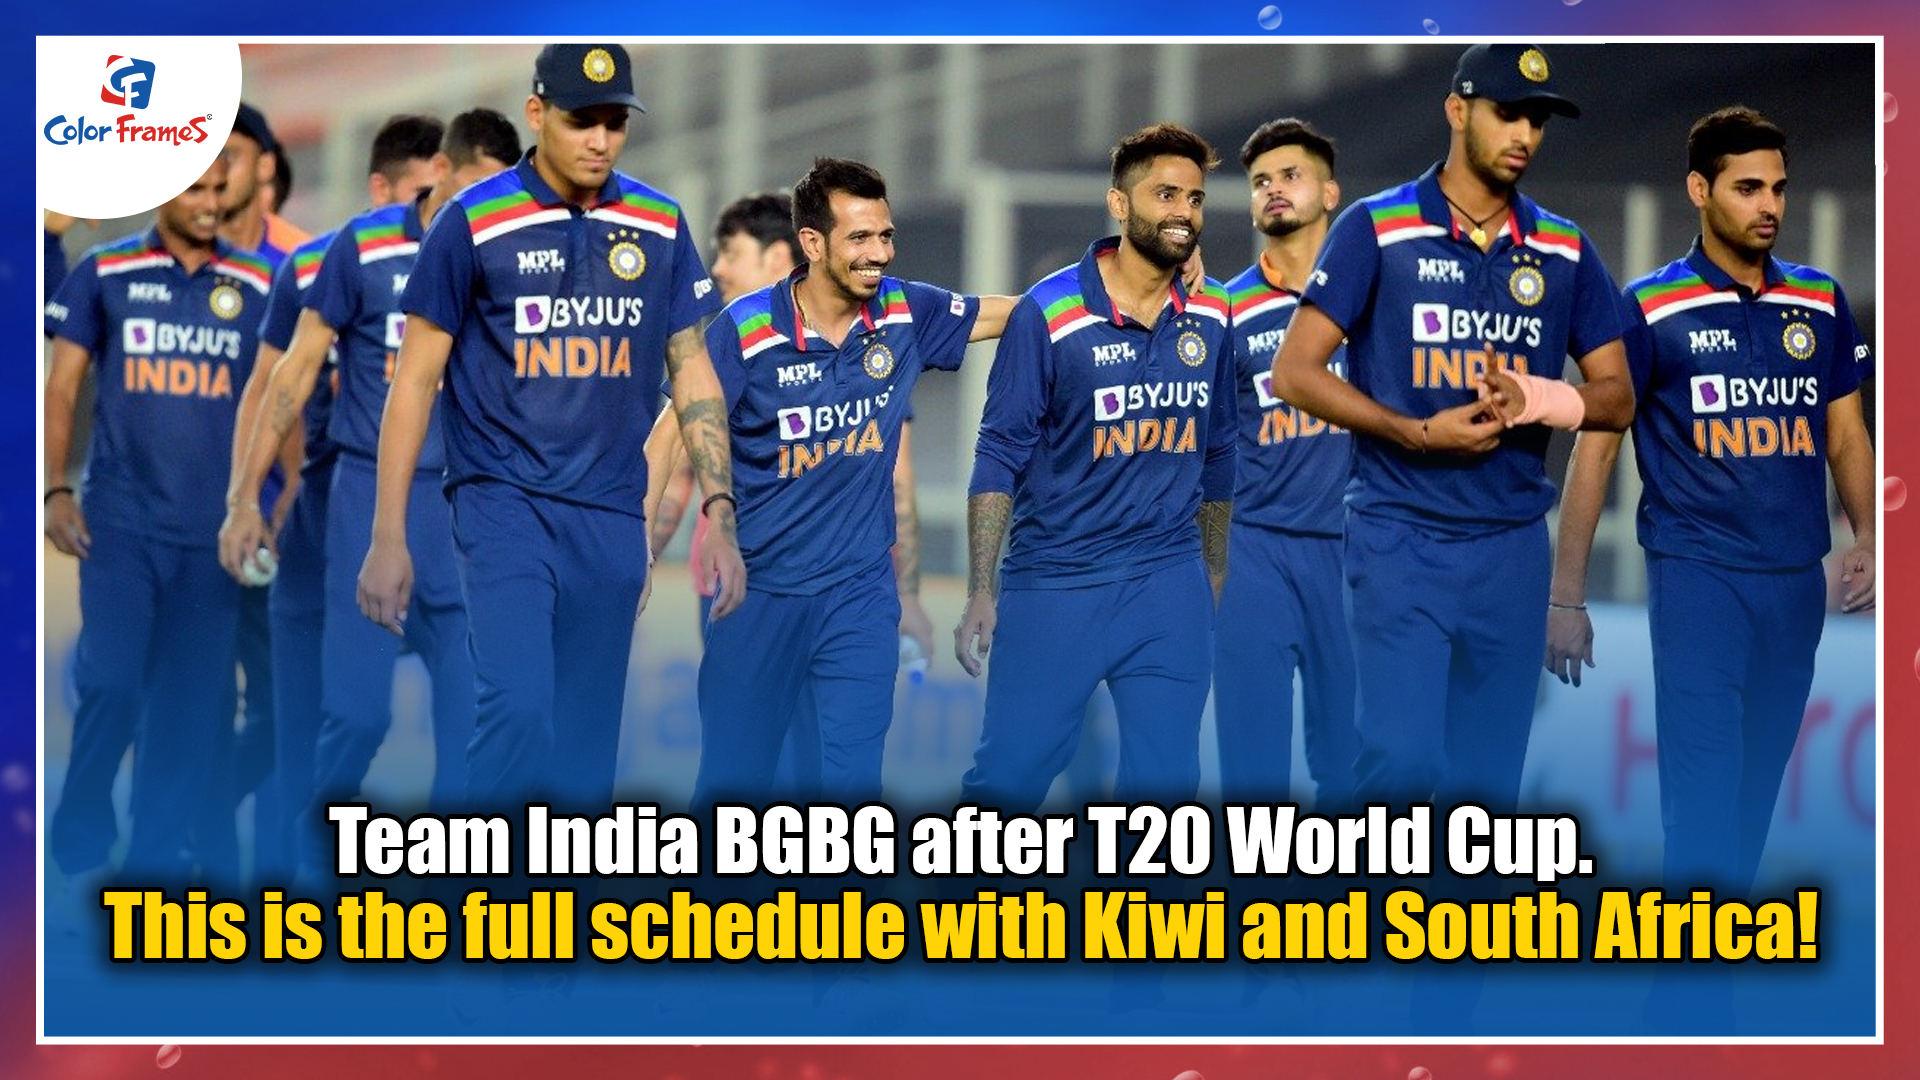 Team India BGBG after T20 World Cup. This is the full schedule with Kiwis and South Africa!